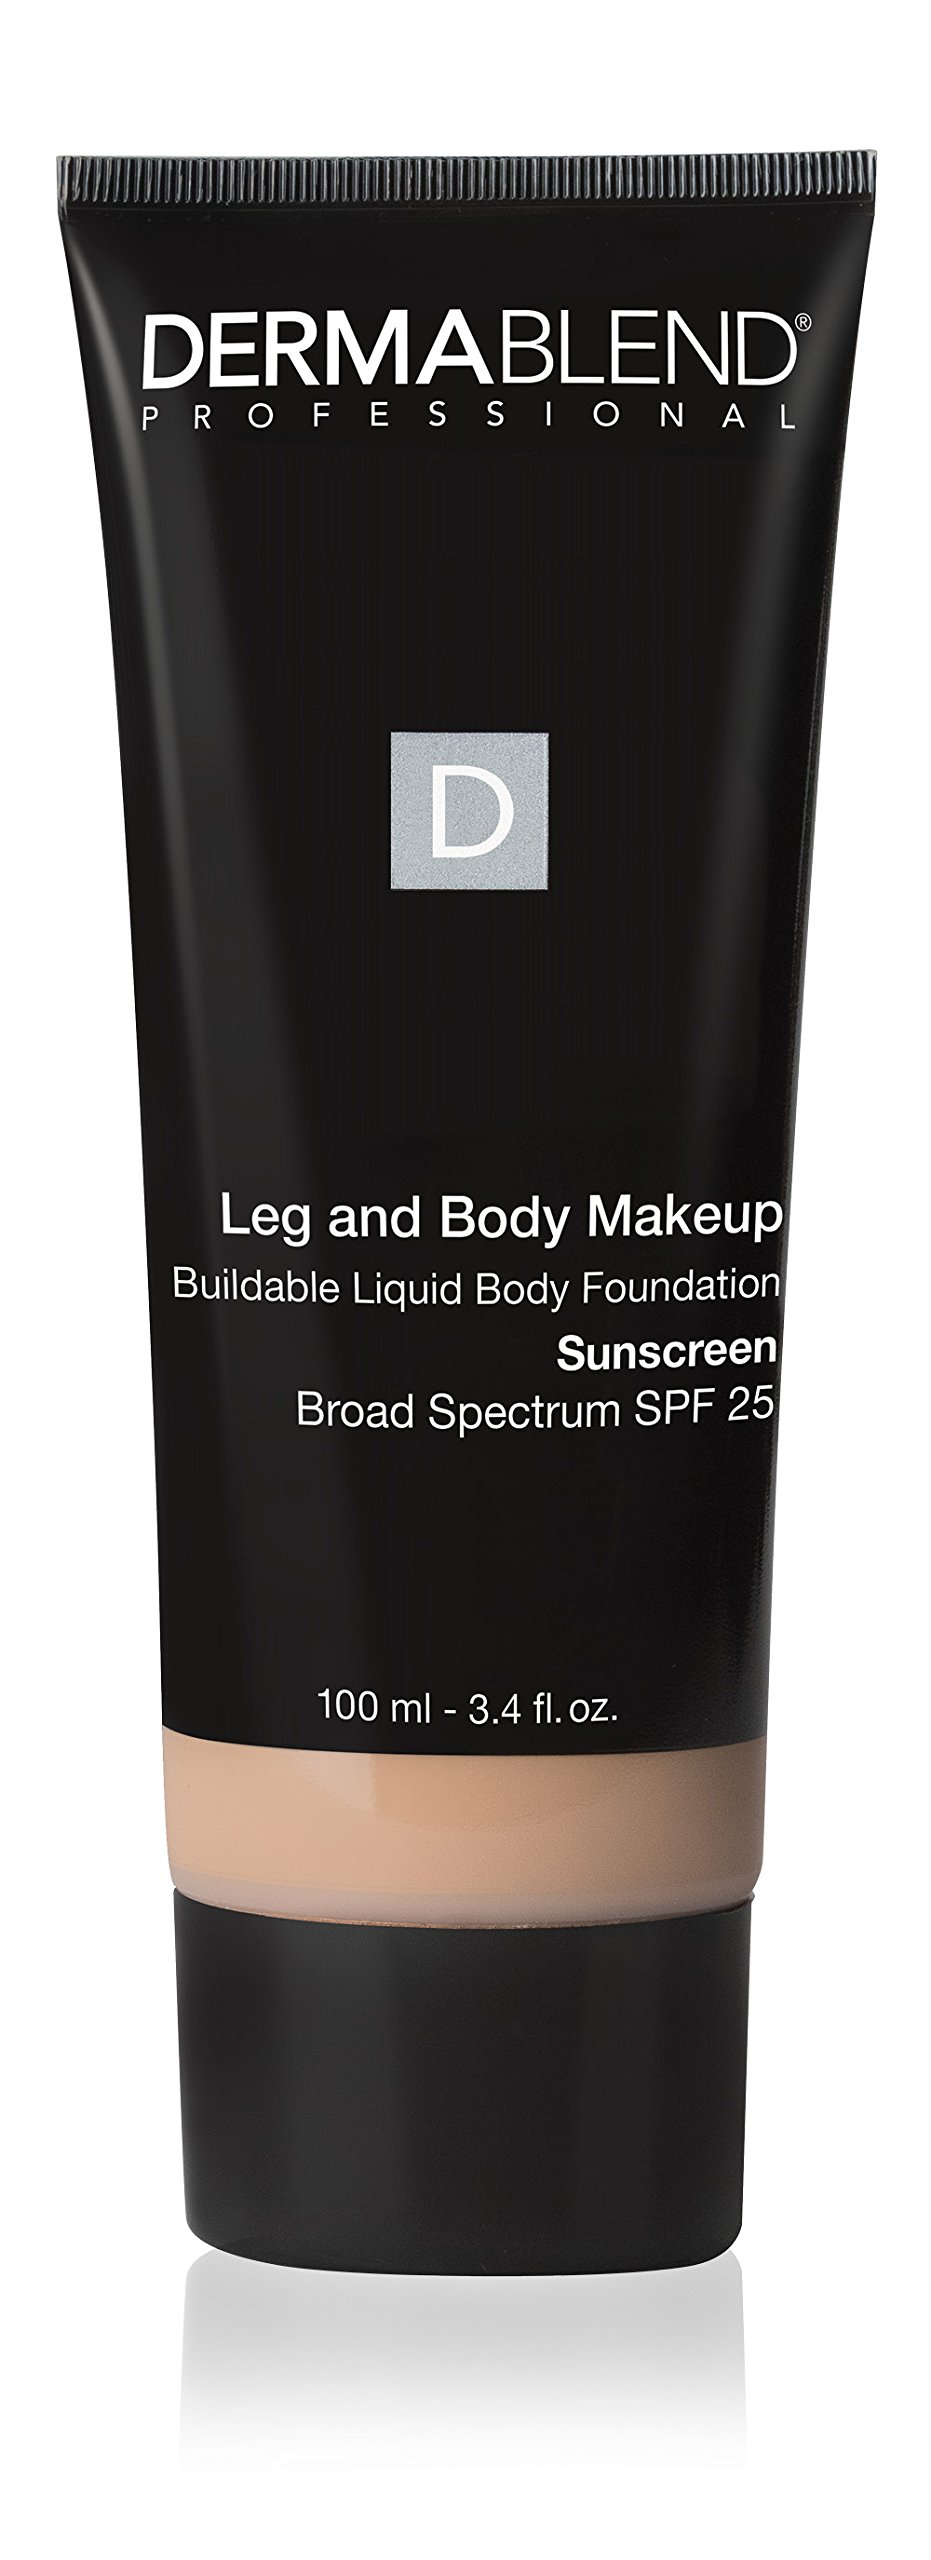 Dermablend Leg and Body Makeup Foundation with SPF 25, 10N Fair Ivory, 3.4 Fl. Oz. by Dermablend